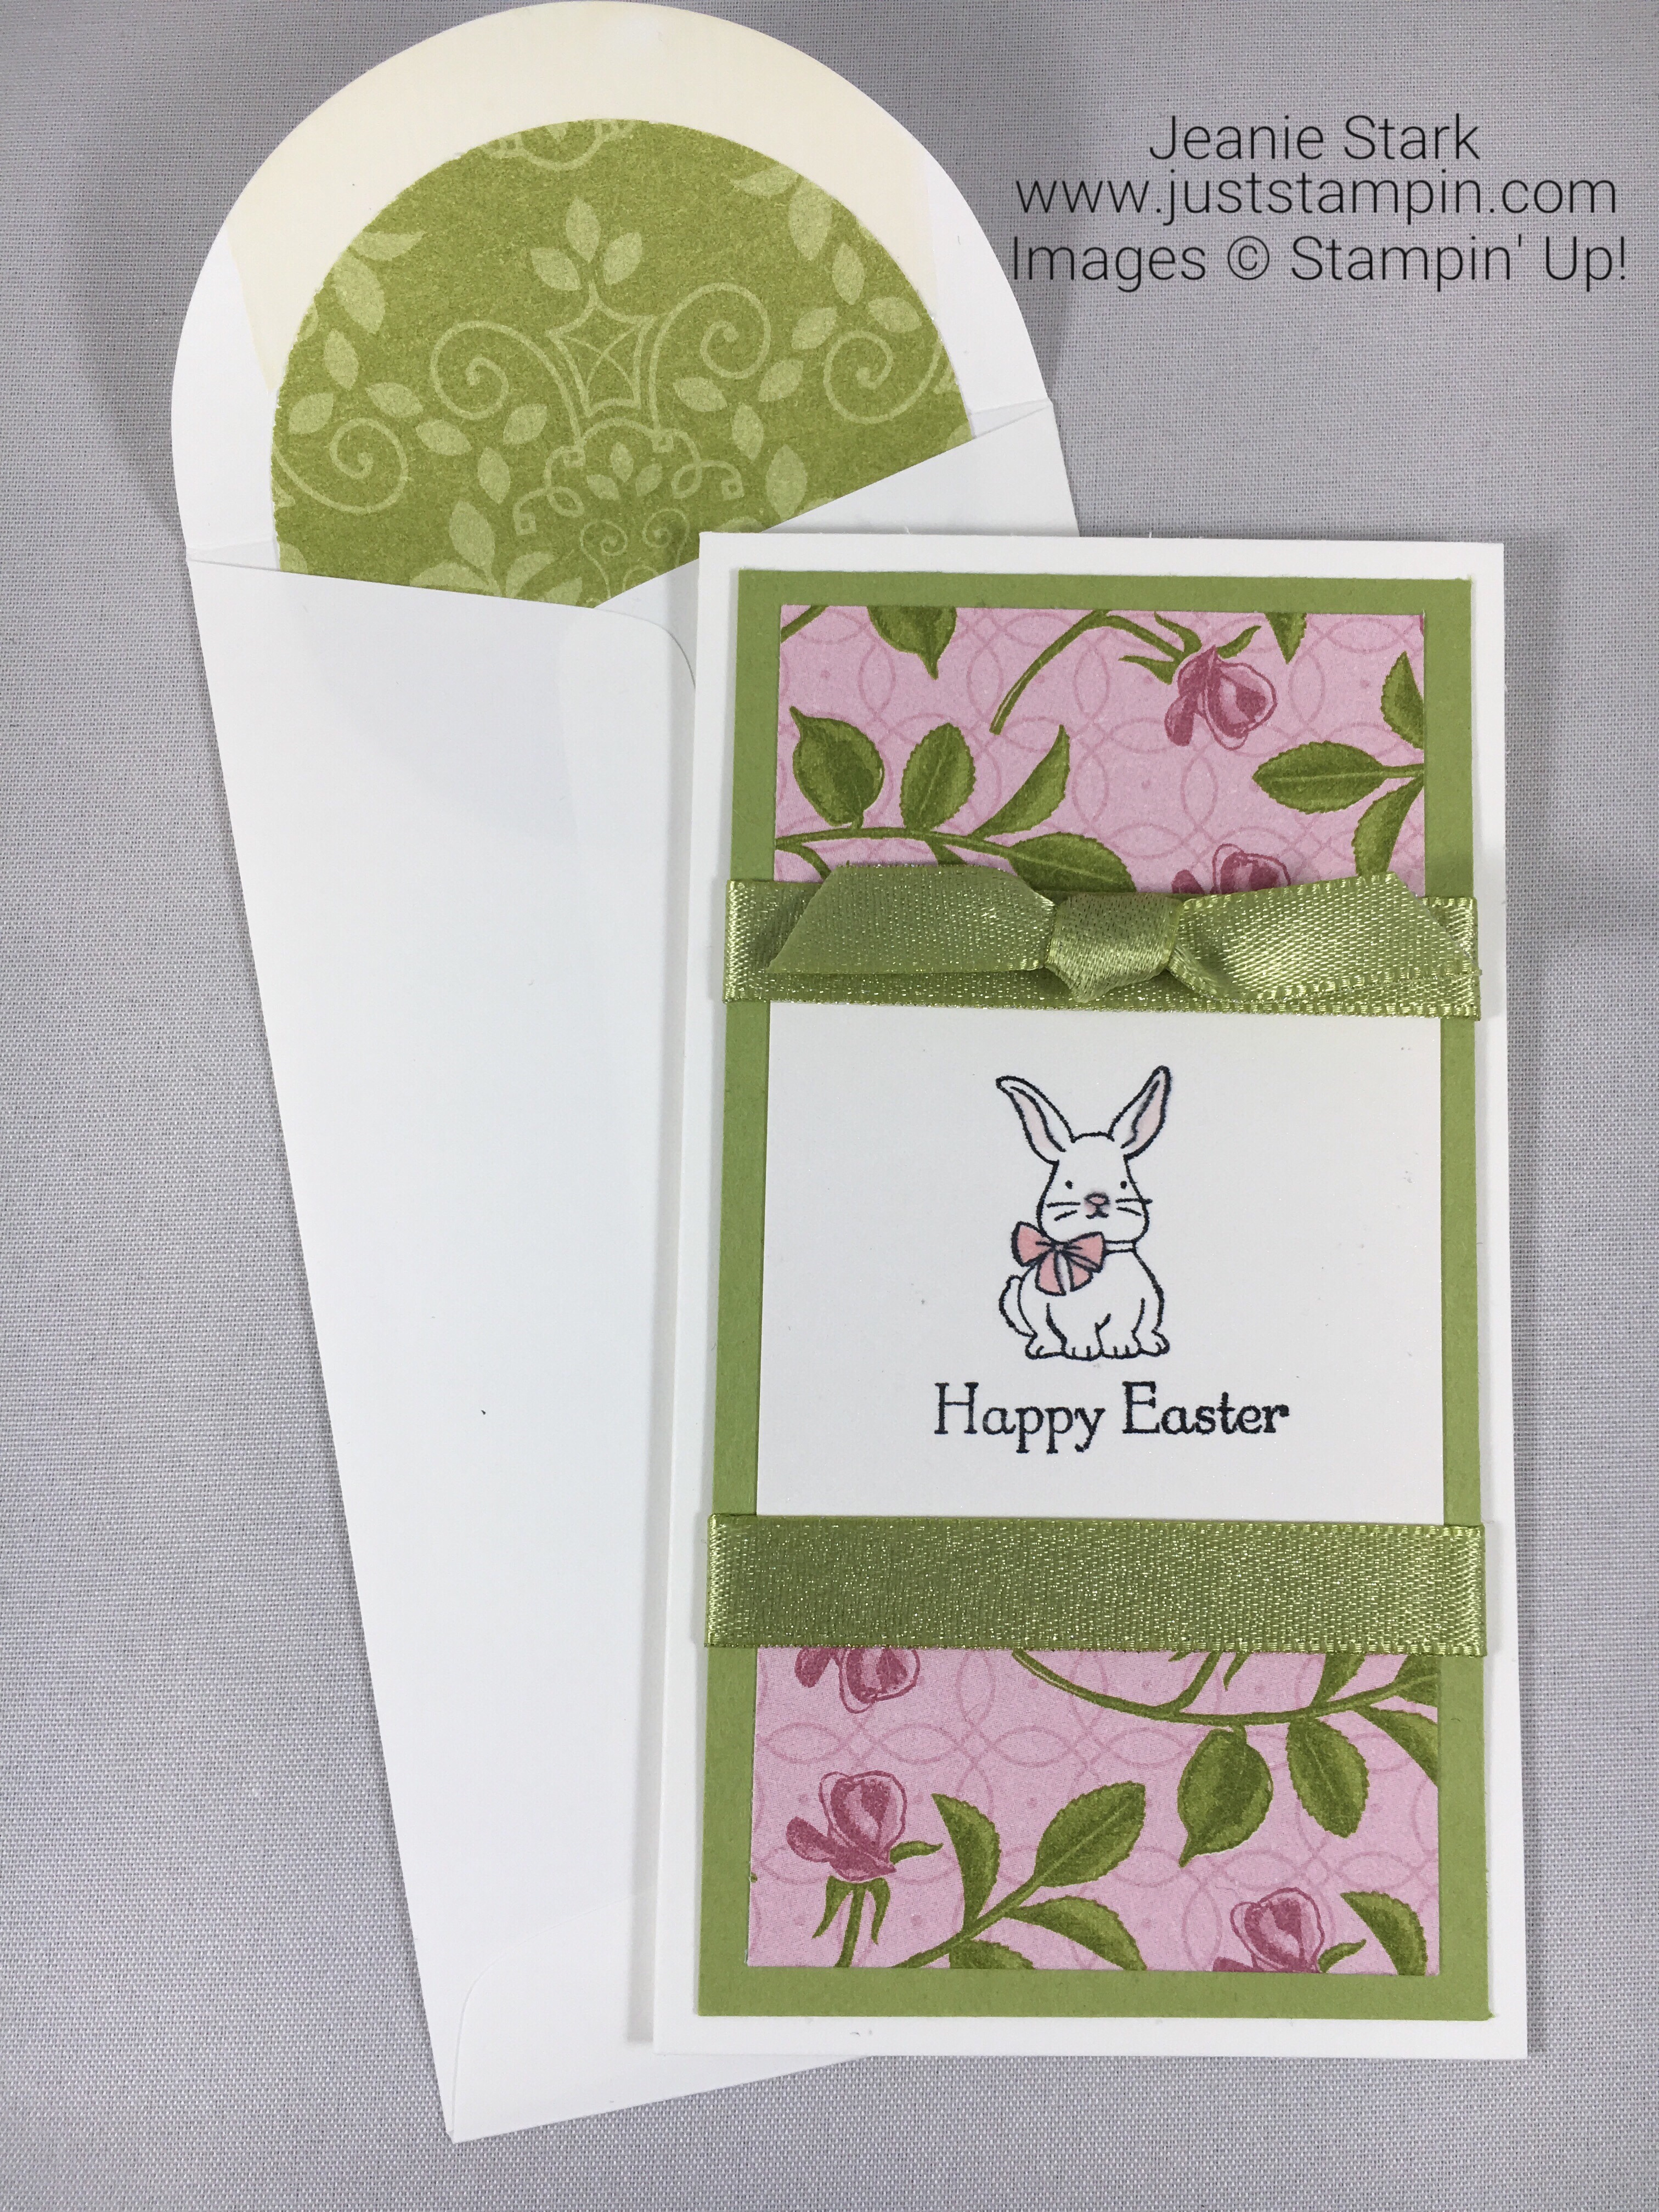 Stampin Up Easter card idea using Narrow Note Card and Petal Garden Designer Series Paper - Jeanie Stark StampinUp